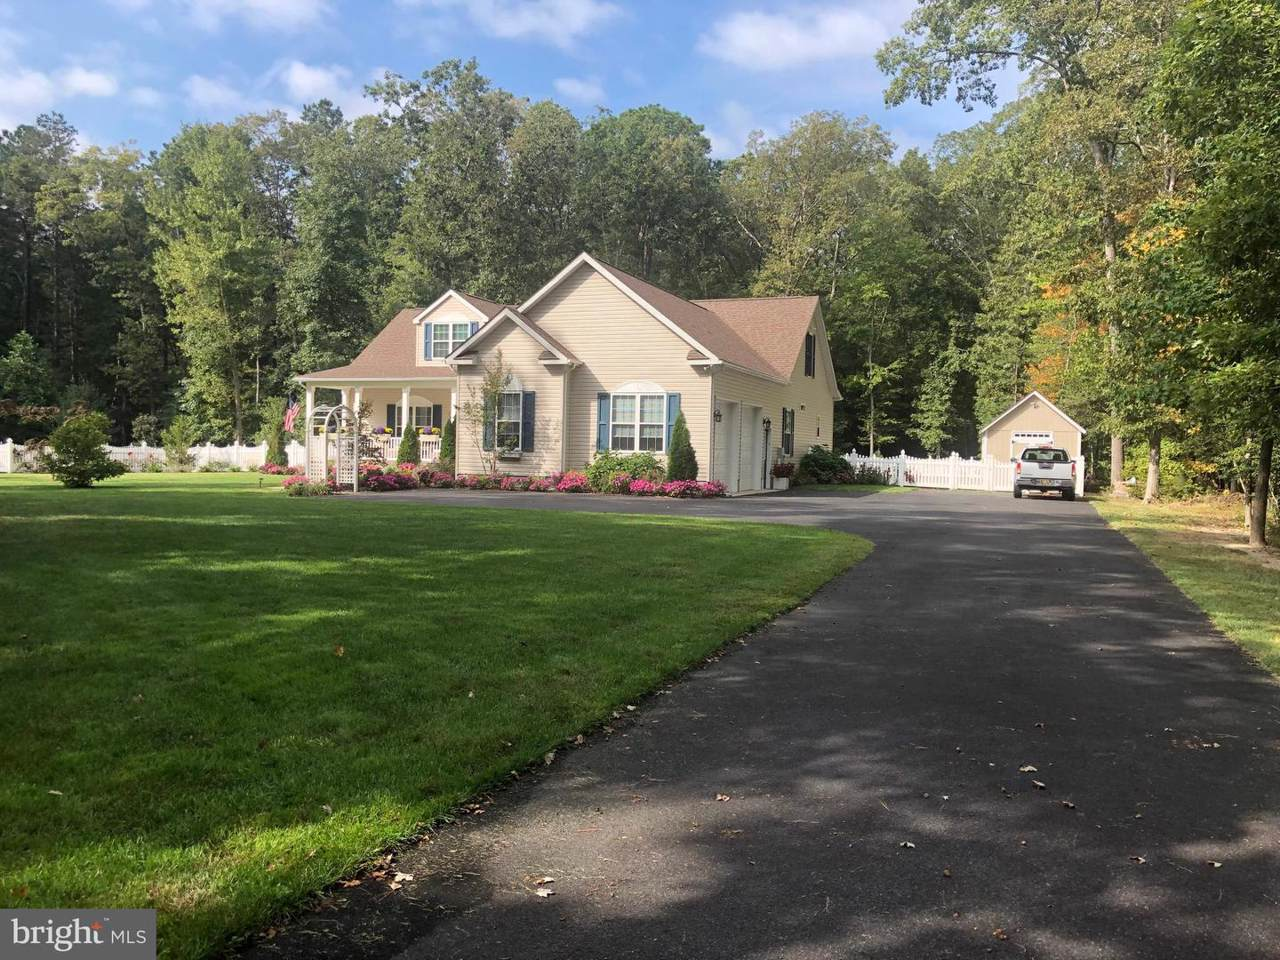 21062 Cool Spring Road - Photo 1